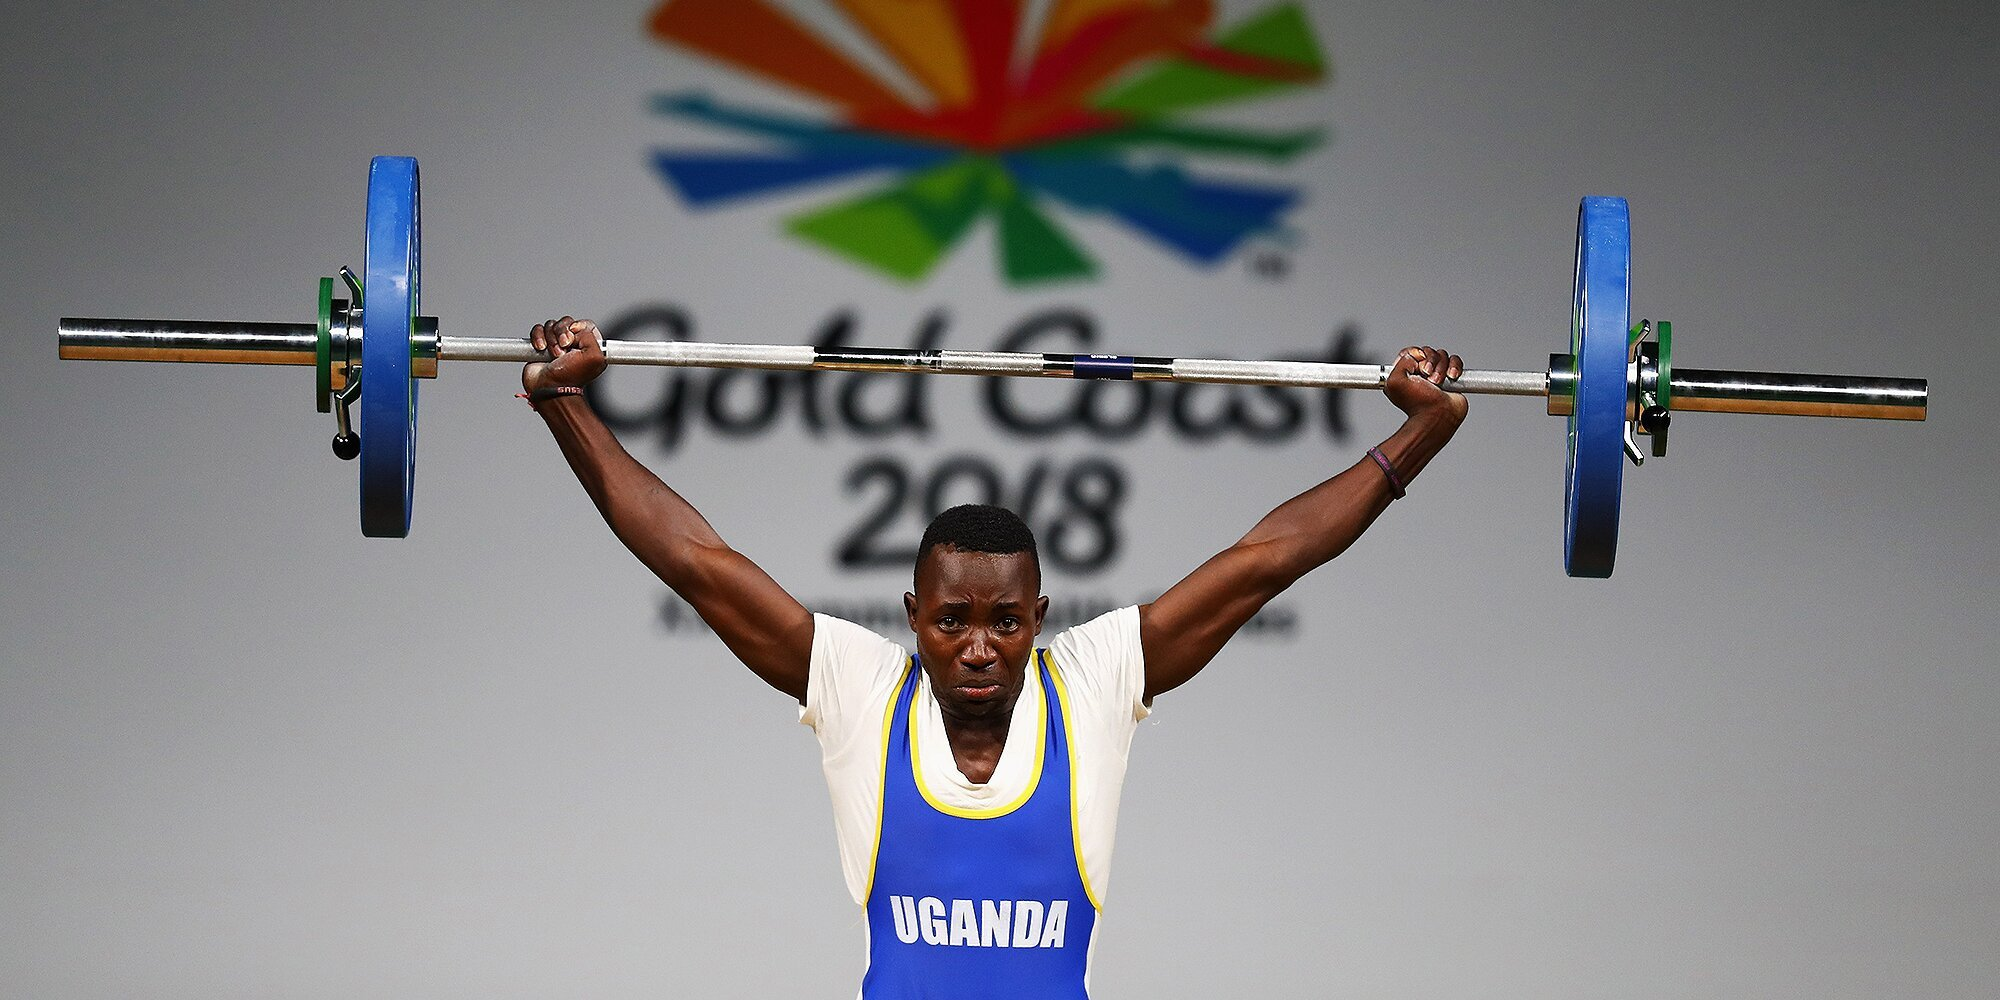 Ugandan Weightlifter Found 100 Miles from Olympic Training Camp After He Went Missing in Japan